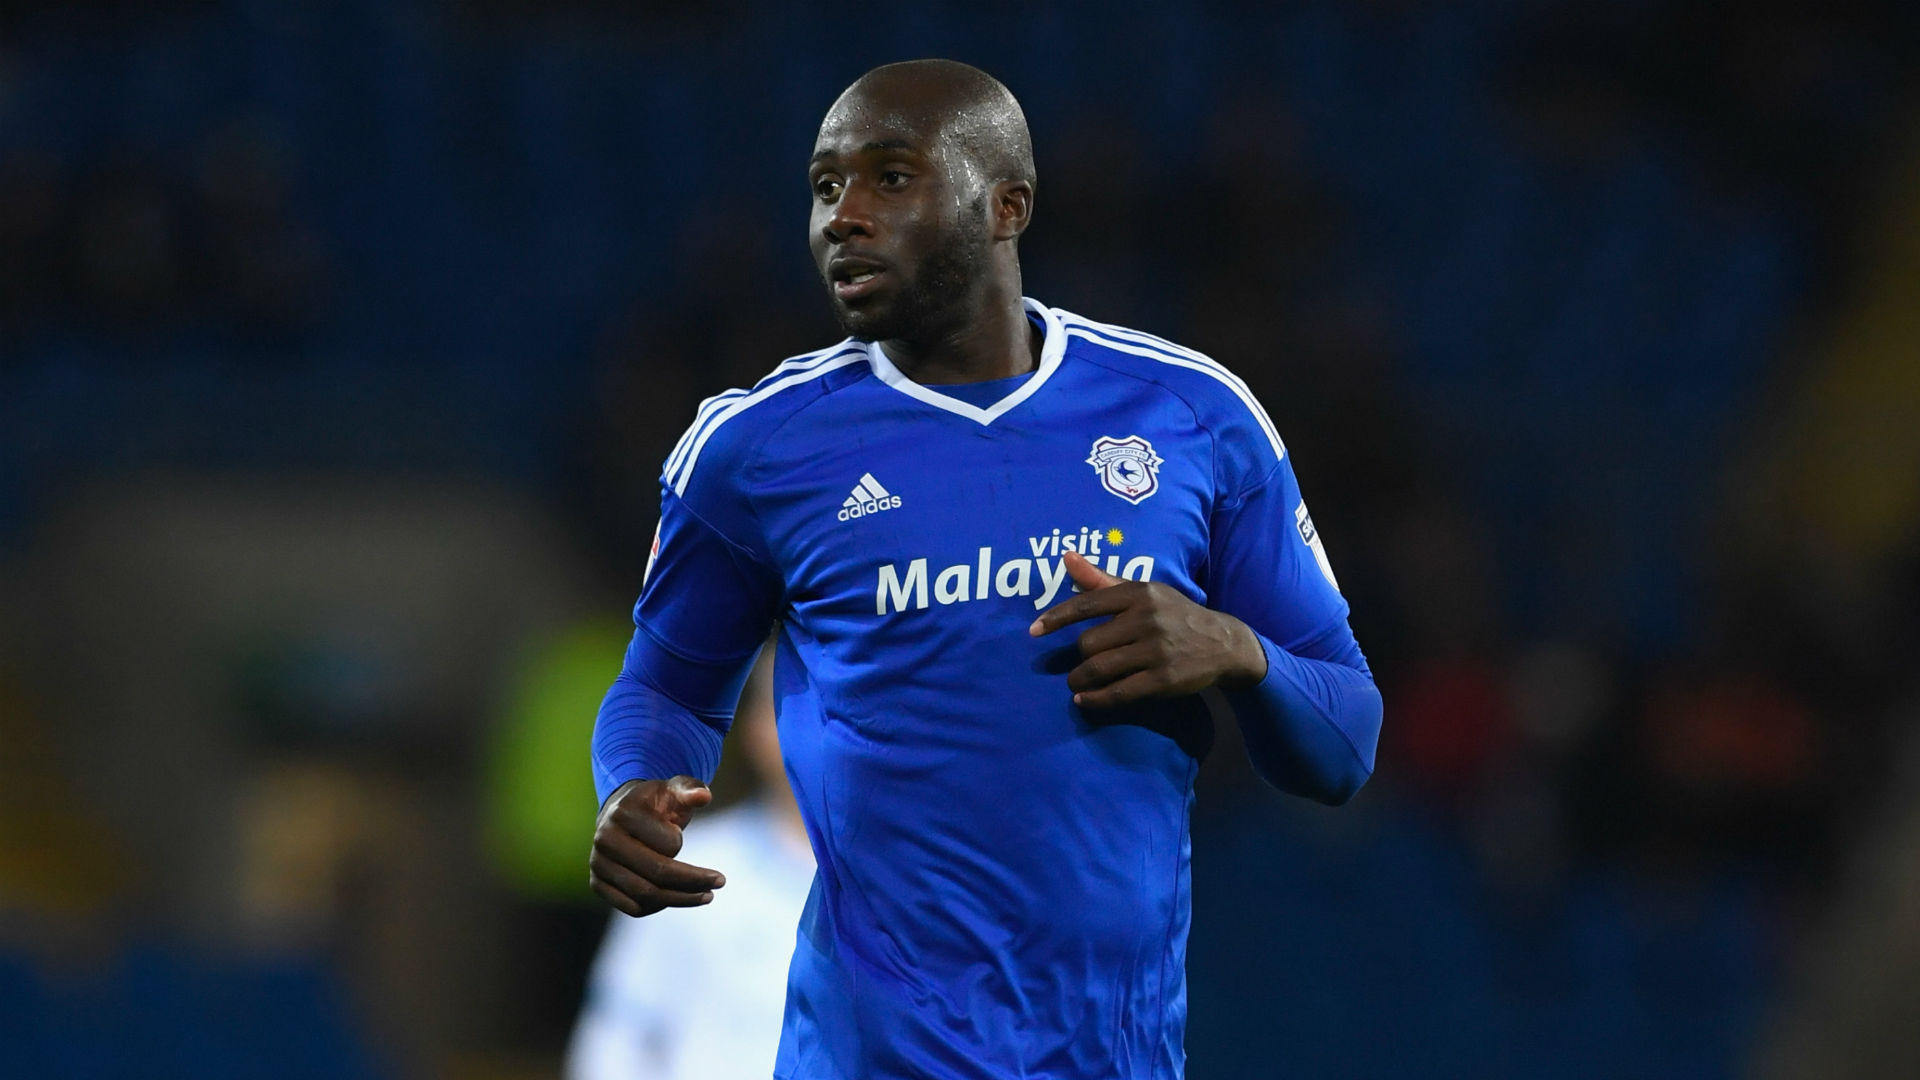 Sol Bamba: Neil Warnock a 'father figure', says Cardiff City defender